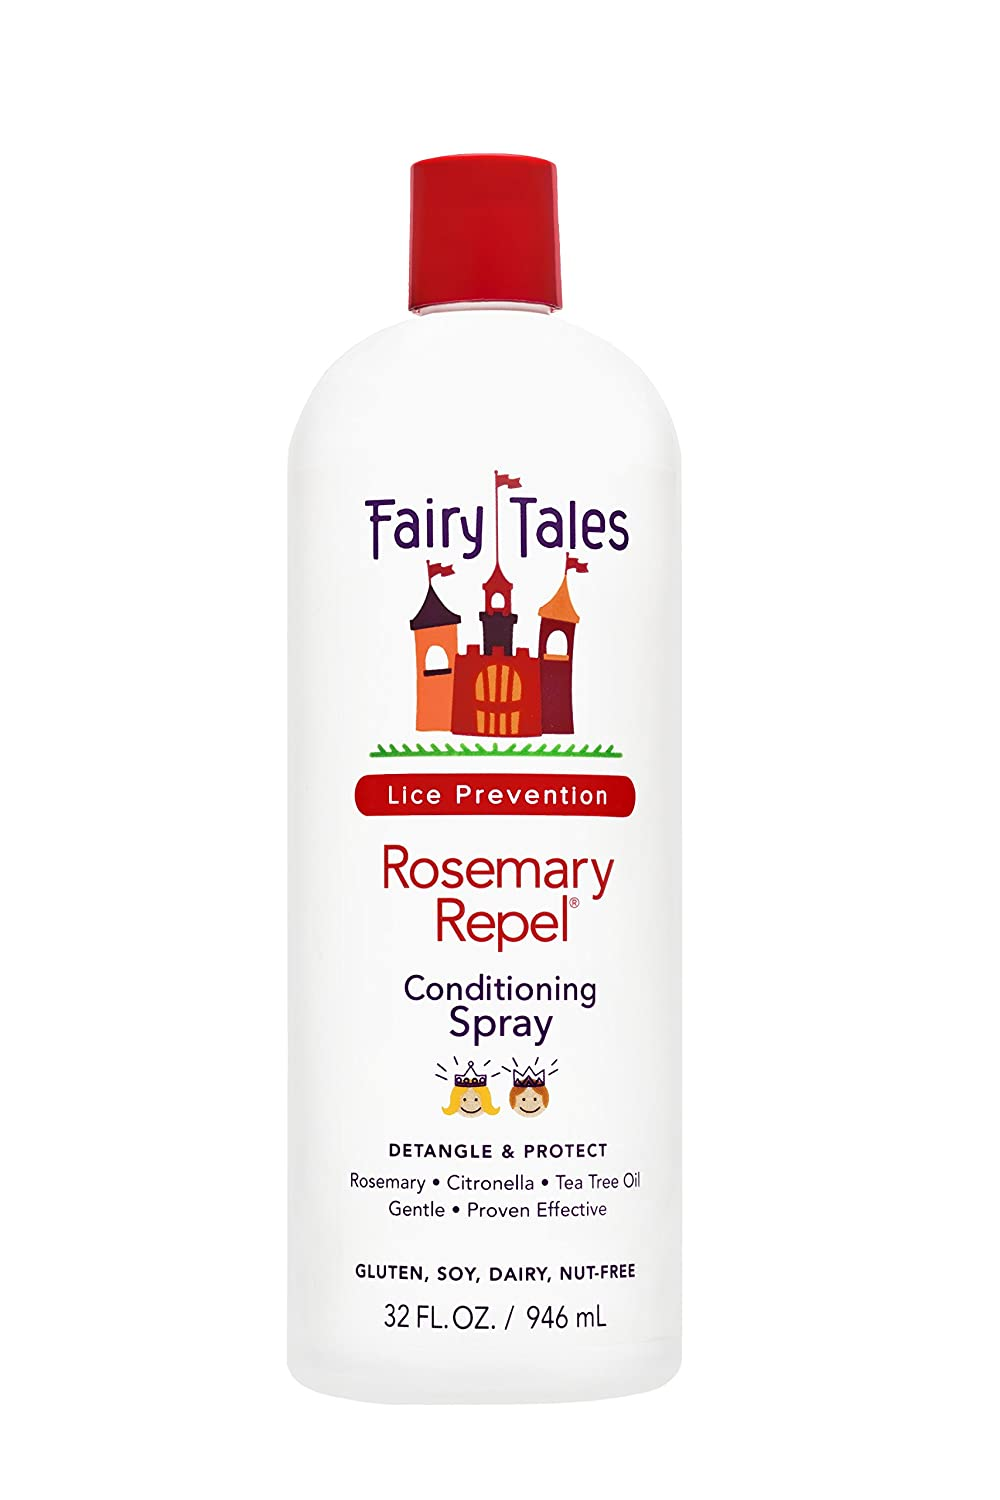 Fairy Tales Rosemary Repel Daily Kid Conditioning Spray Refillfor Lice Prevention, 32 Fl Oz (Pack of 1)